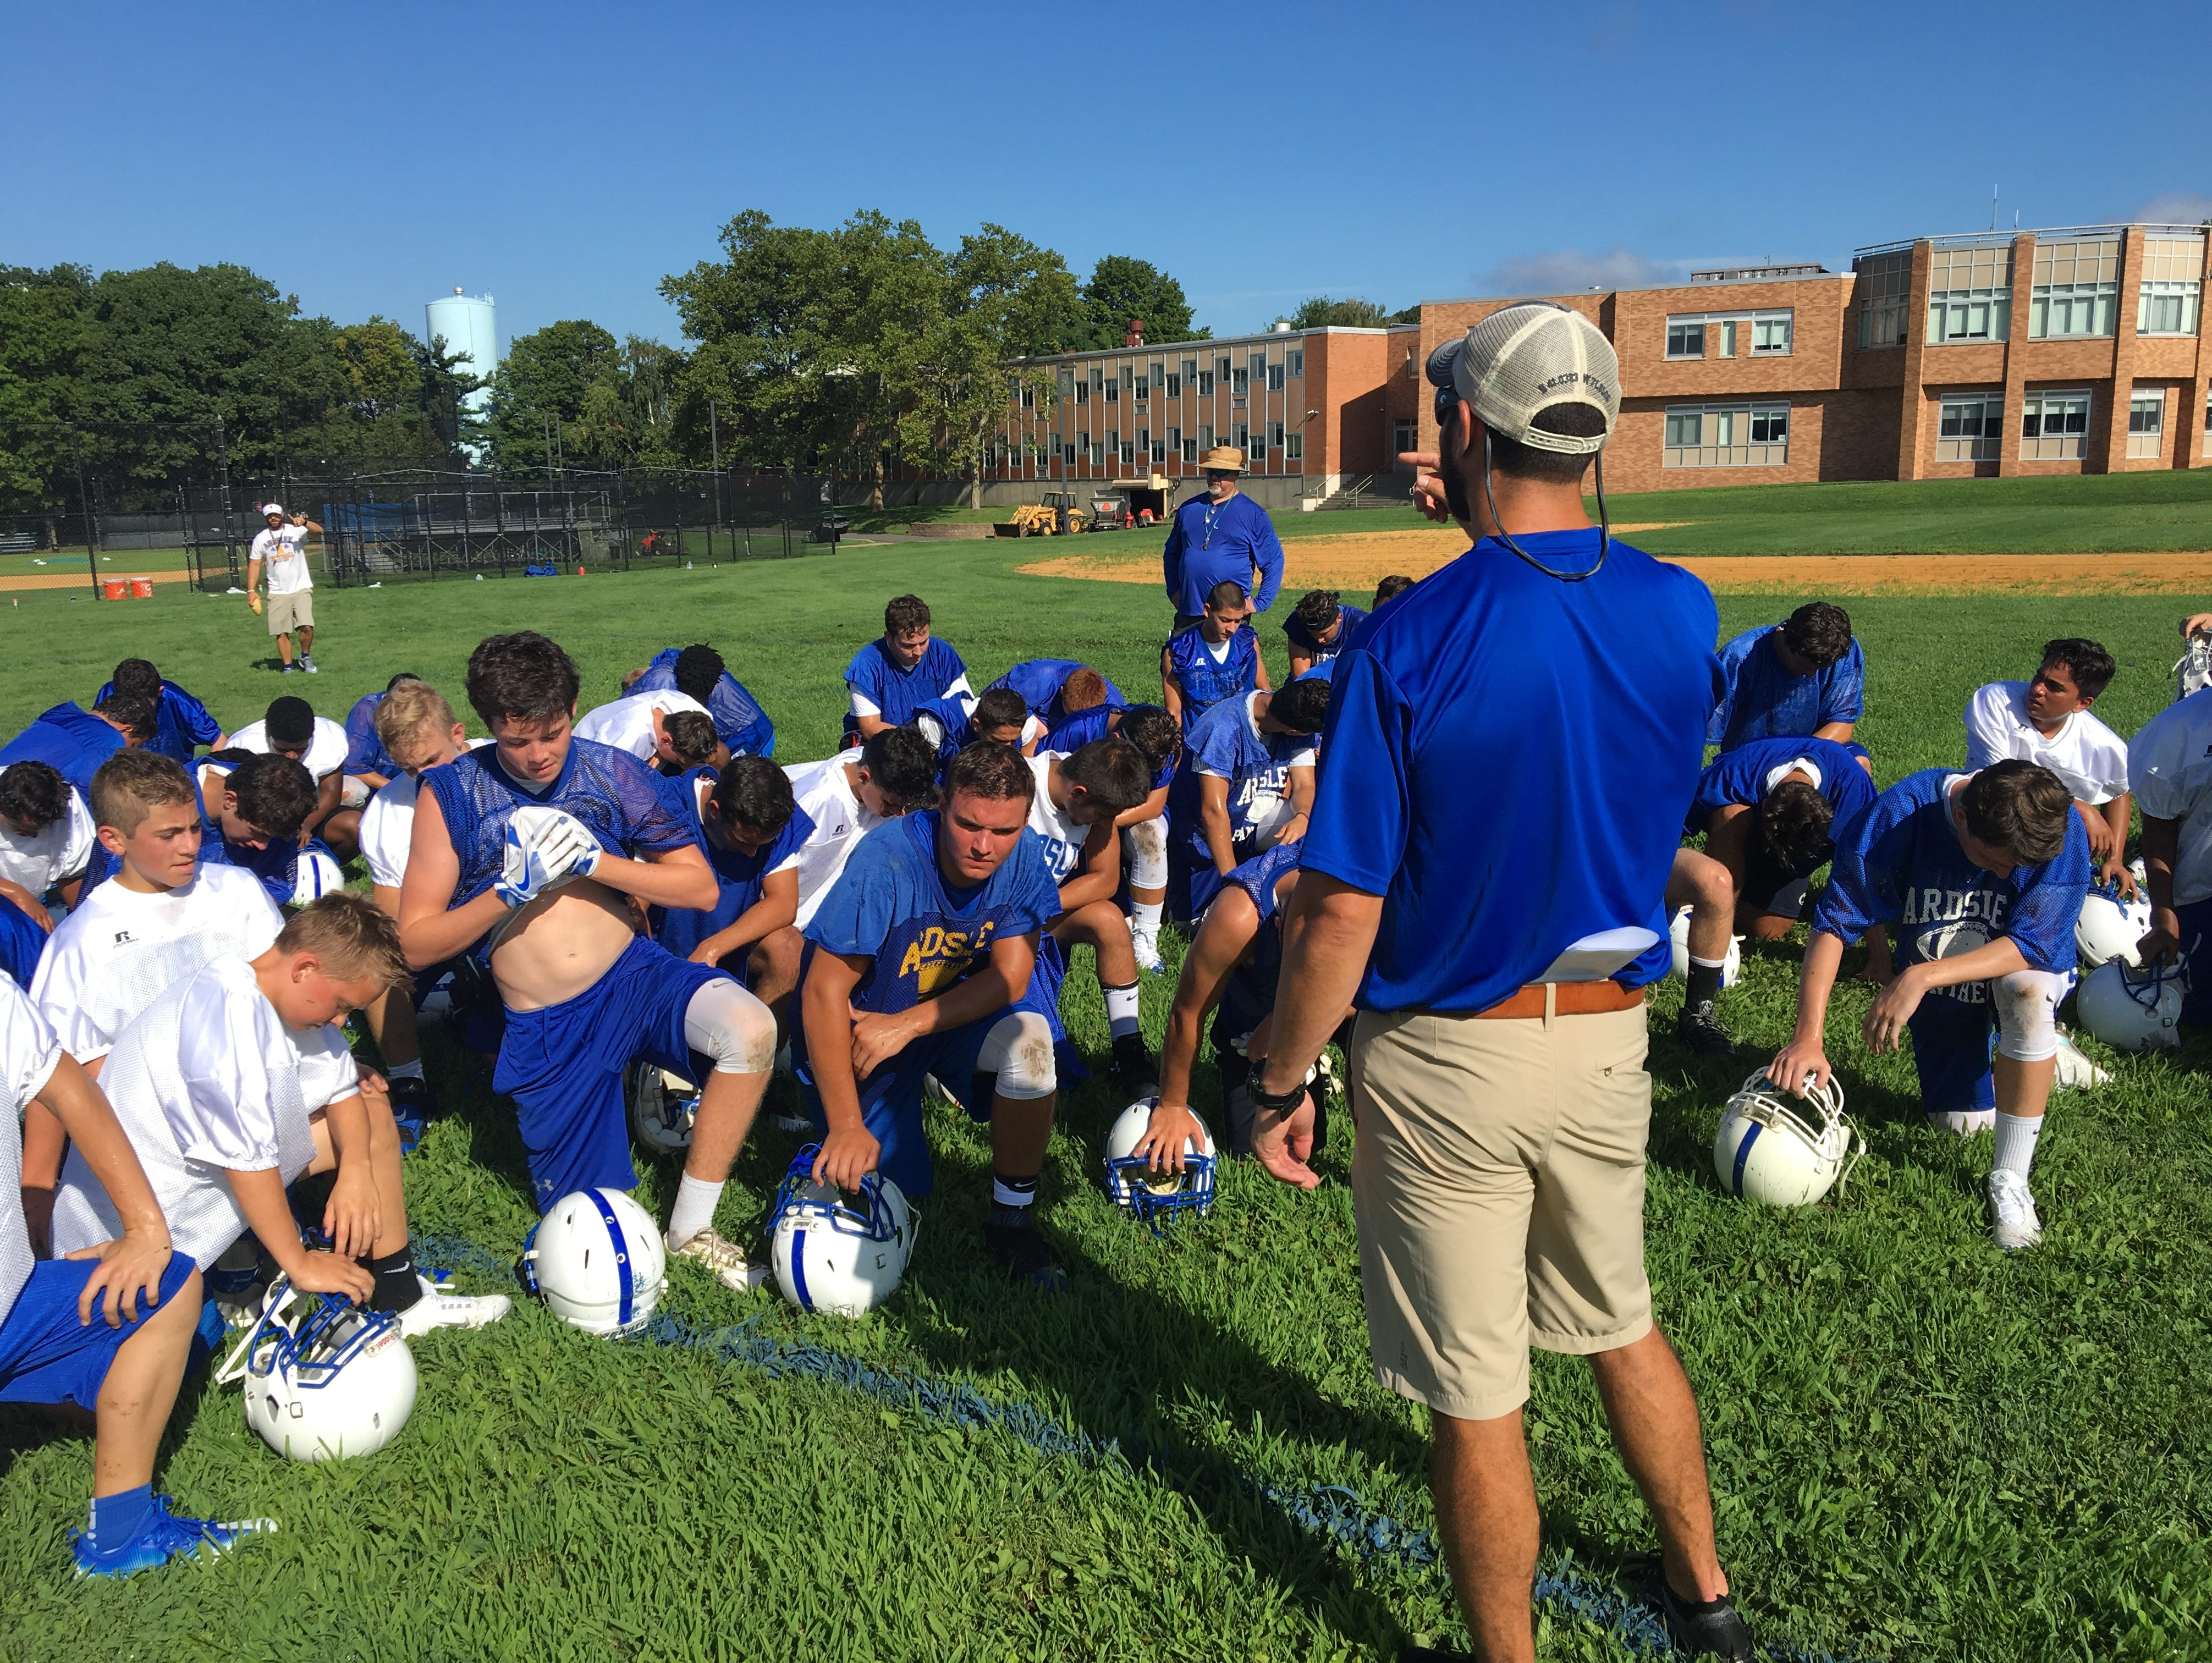 Ardsley hit the field for the first practice of the 2016 football season on Aug. 15, 2016.